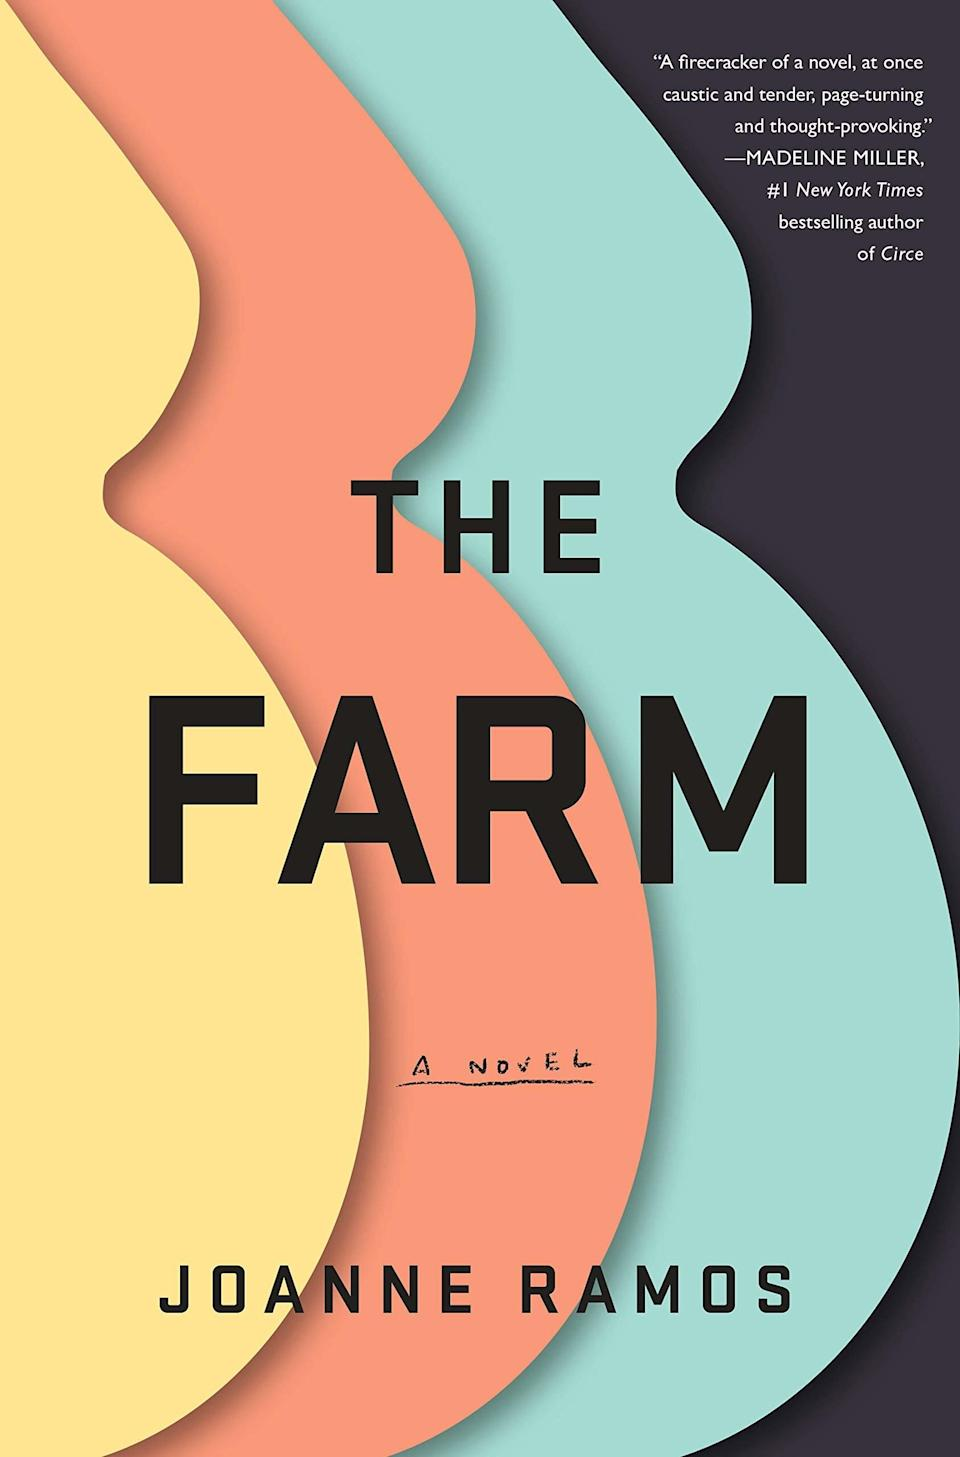 """<em>The Farm</em> is what the world of the <em><a href=""""https://www.glamour.com/about/the-handmaids-tale?mbid=synd_yahoo_rss"""" rel=""""nofollow noopener"""" target=""""_blank"""" data-ylk=""""slk:The Handmaid's Tale"""" class=""""link rapid-noclick-resp"""">The Handmaid's Tale</a></em> would be like if Serena Joy, Aunt Lydia, and the gang suddenly started reading <a href=""""https://goop.com/"""" rel=""""nofollow noopener"""" target=""""_blank"""" data-ylk=""""slk:Goop"""" class=""""link rapid-noclick-resp"""">Goop</a>. This novel is set at a luxury retreat where for nine months you're given organic meals, trainers, and daily massages. Imagine CBD and yoni eggs galore. There's just one catch: You're carrying the perfect baby—for someone else. Oh, and you also can't leave or talk to people in your former life, and you're always being watched. Blessed be the fruit."""